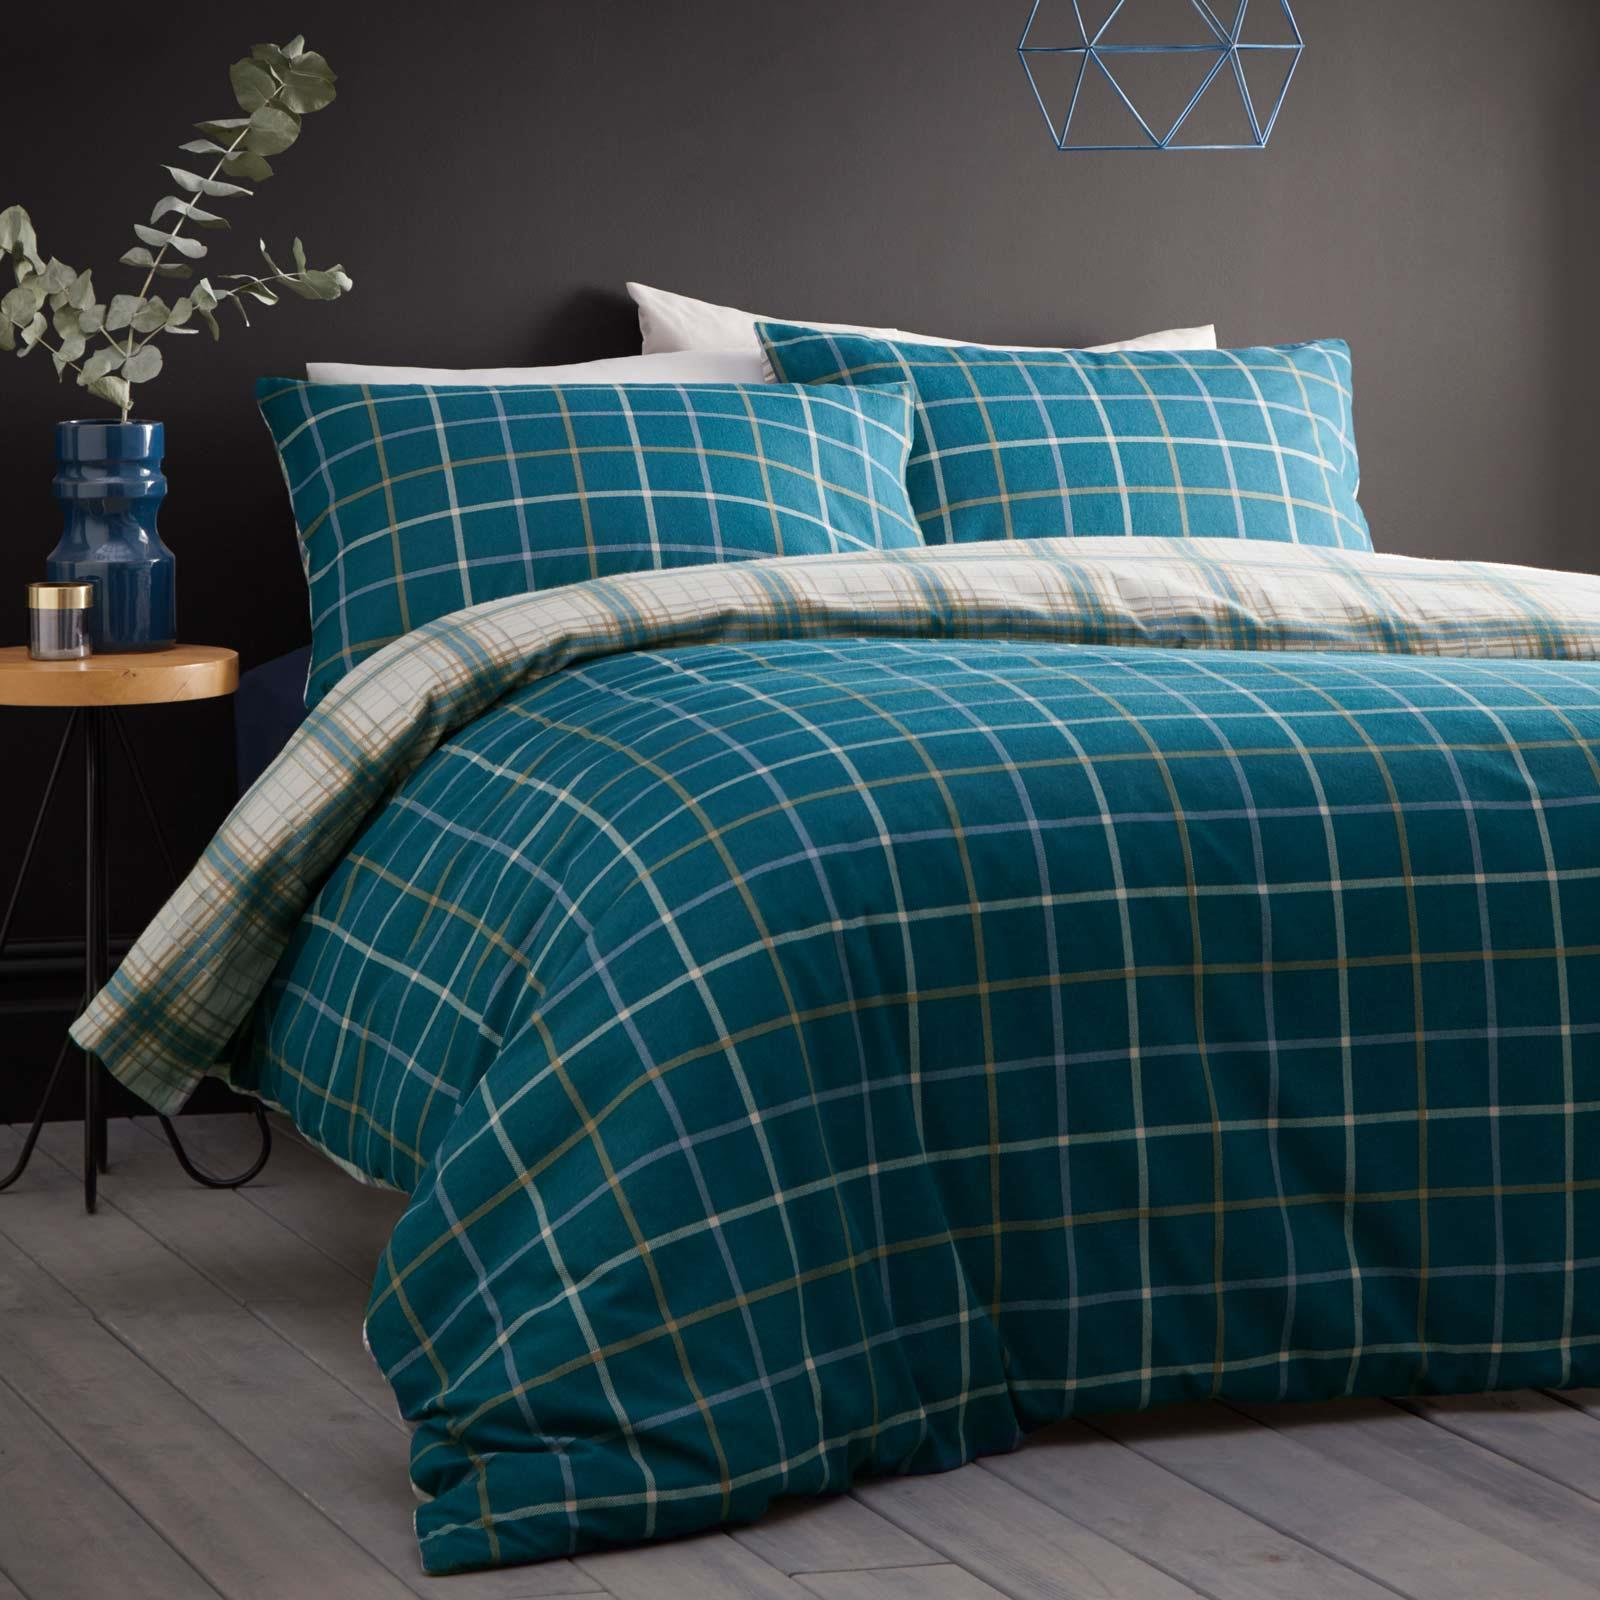 Teal Duvet Covers Checked Flannelette Brushed Cotton Quilt Cover Bedding Sets Ebay